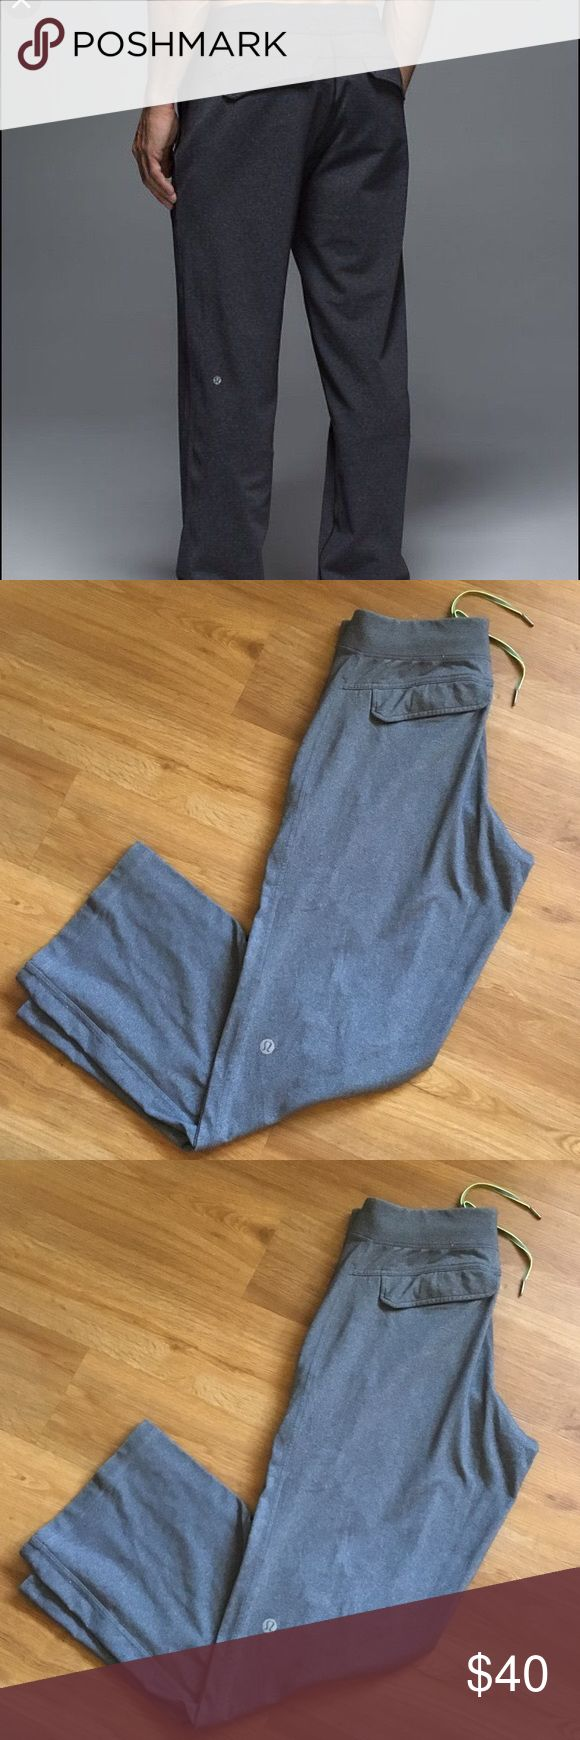 Lululemon men's Kung fu Pants gray size m Lululemon men's Kung fu pants size m lululemon athletica Pants